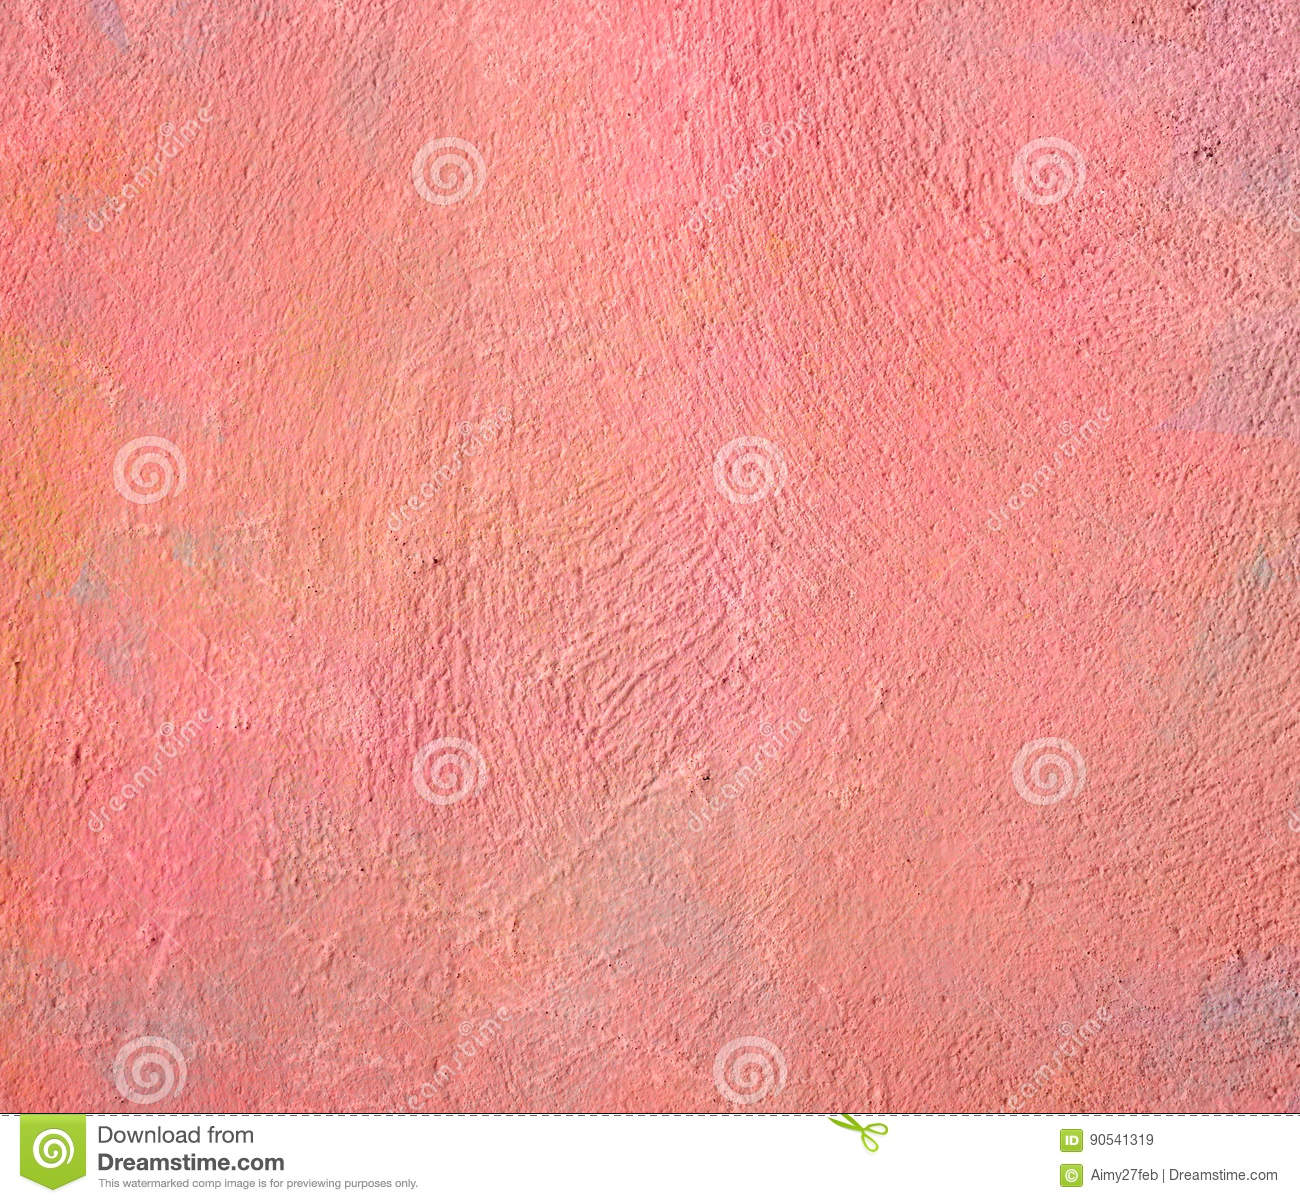 Abstract grunge background. With different color patterns, purple and pink.